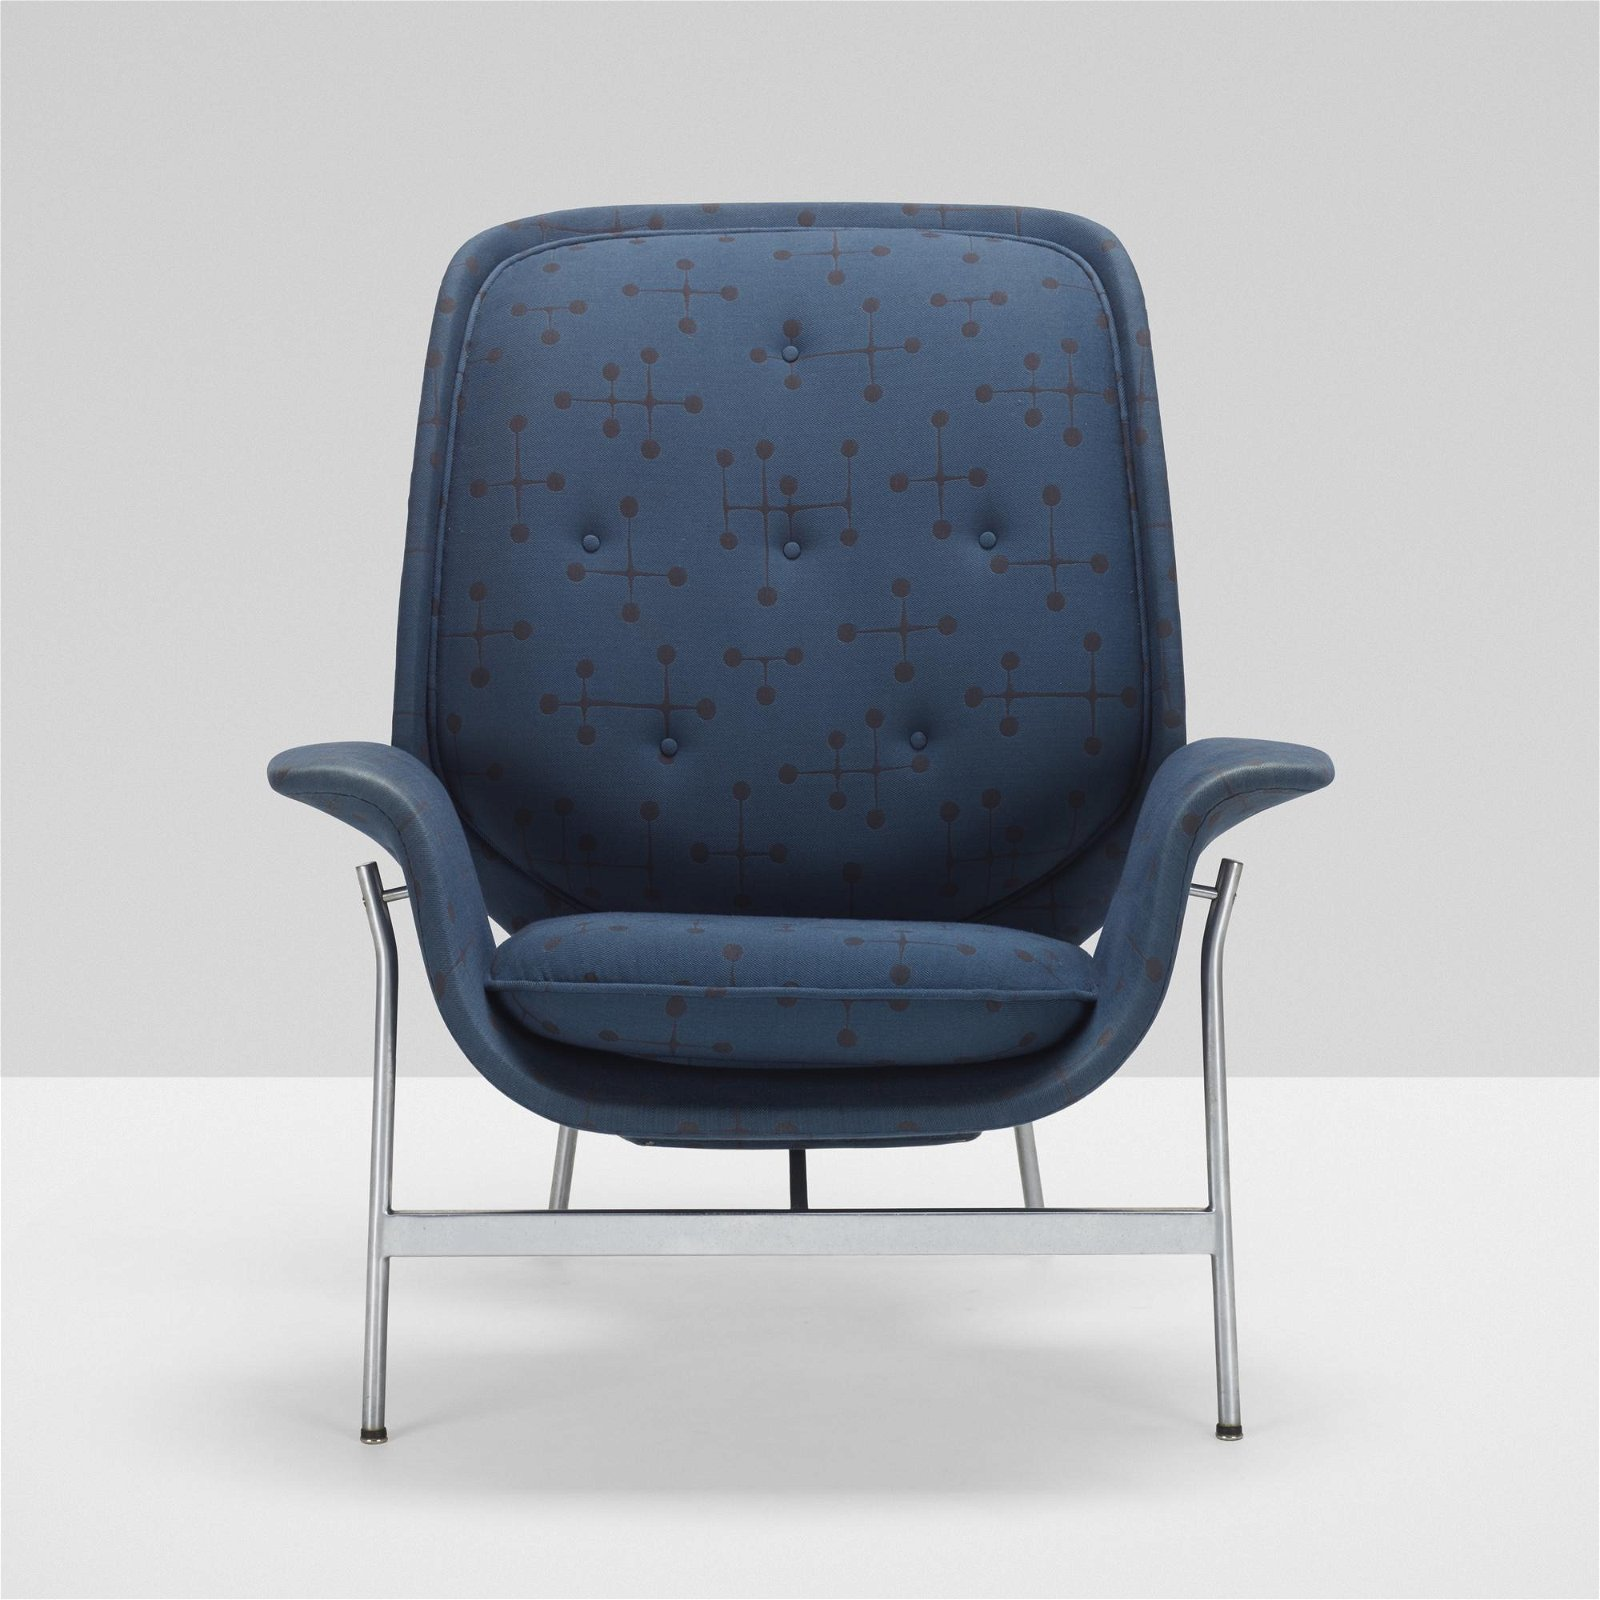 George Nelson & Associates, Kangaroo chair